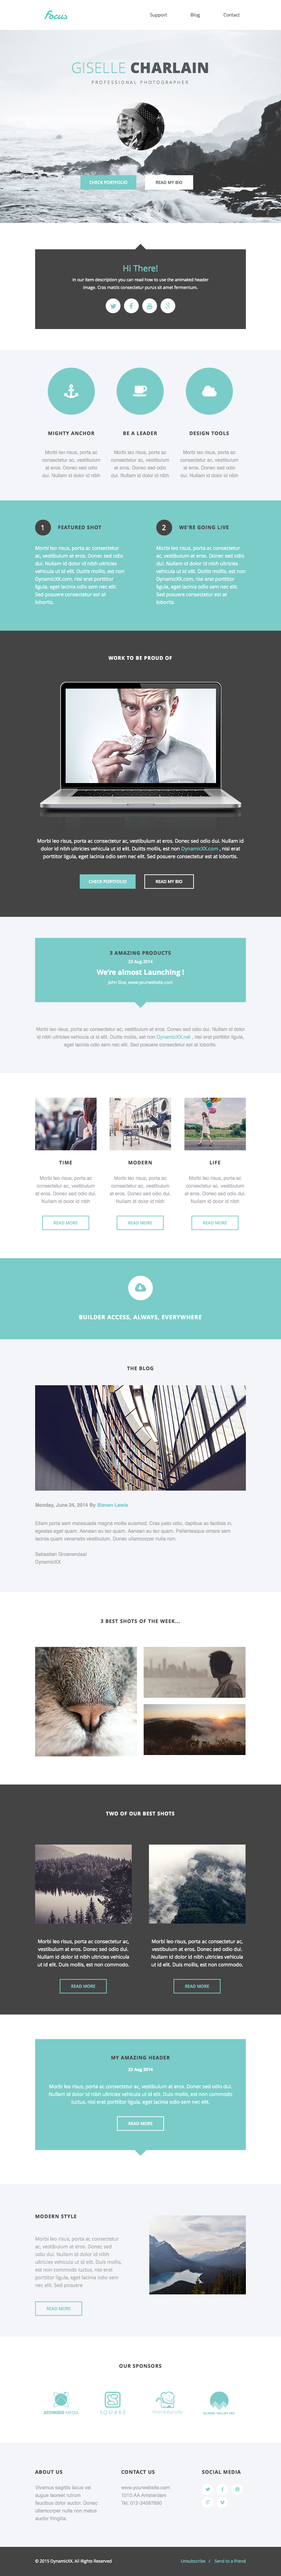 Focus Responsive Email + Online Template Builder #icontact ...